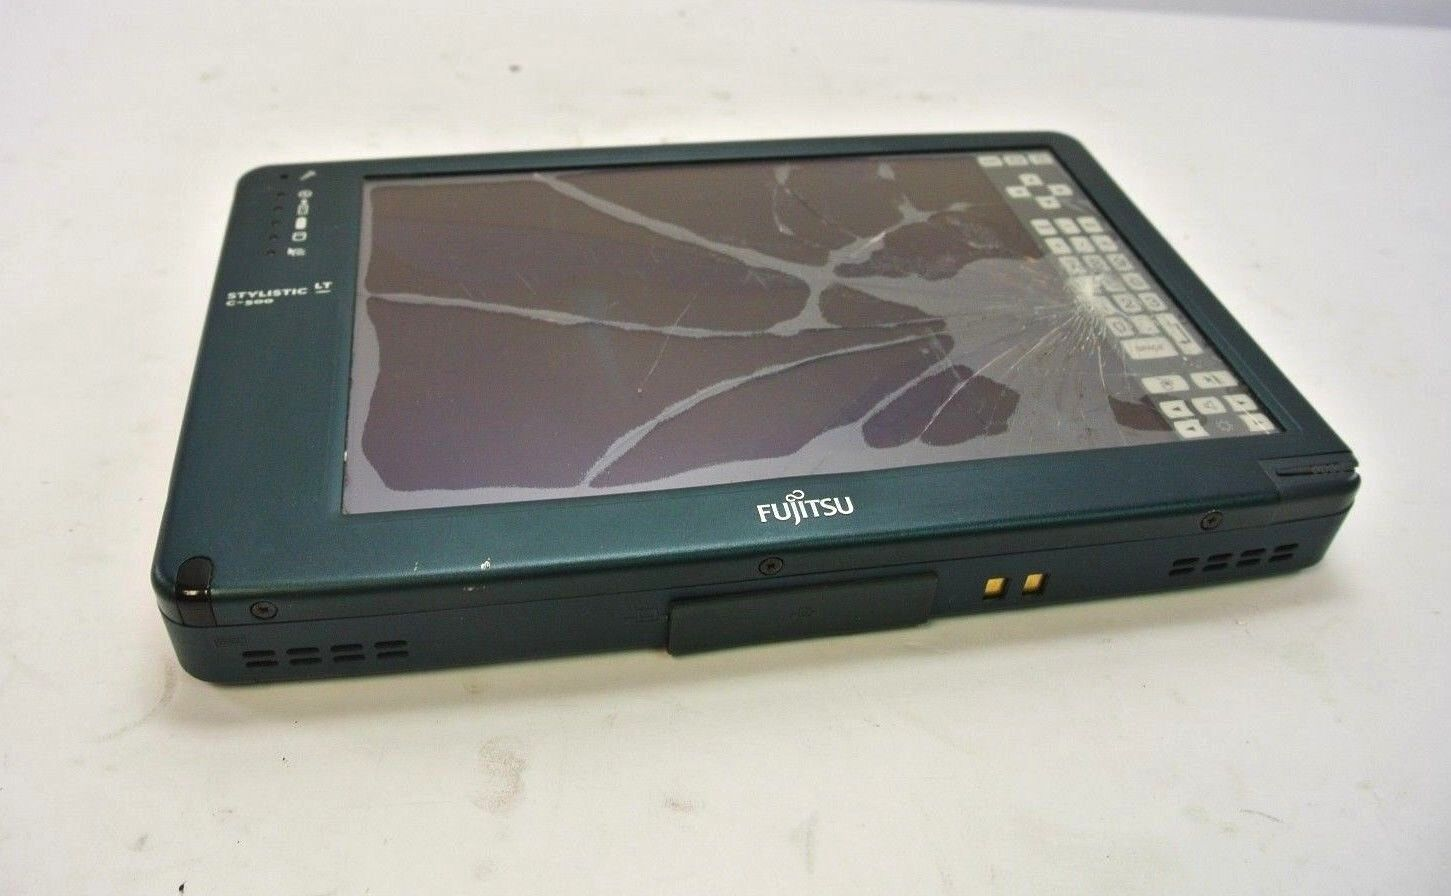 Fujitsu LT C-500 Tablet PC - For Parts / Repair, Cracked LCD